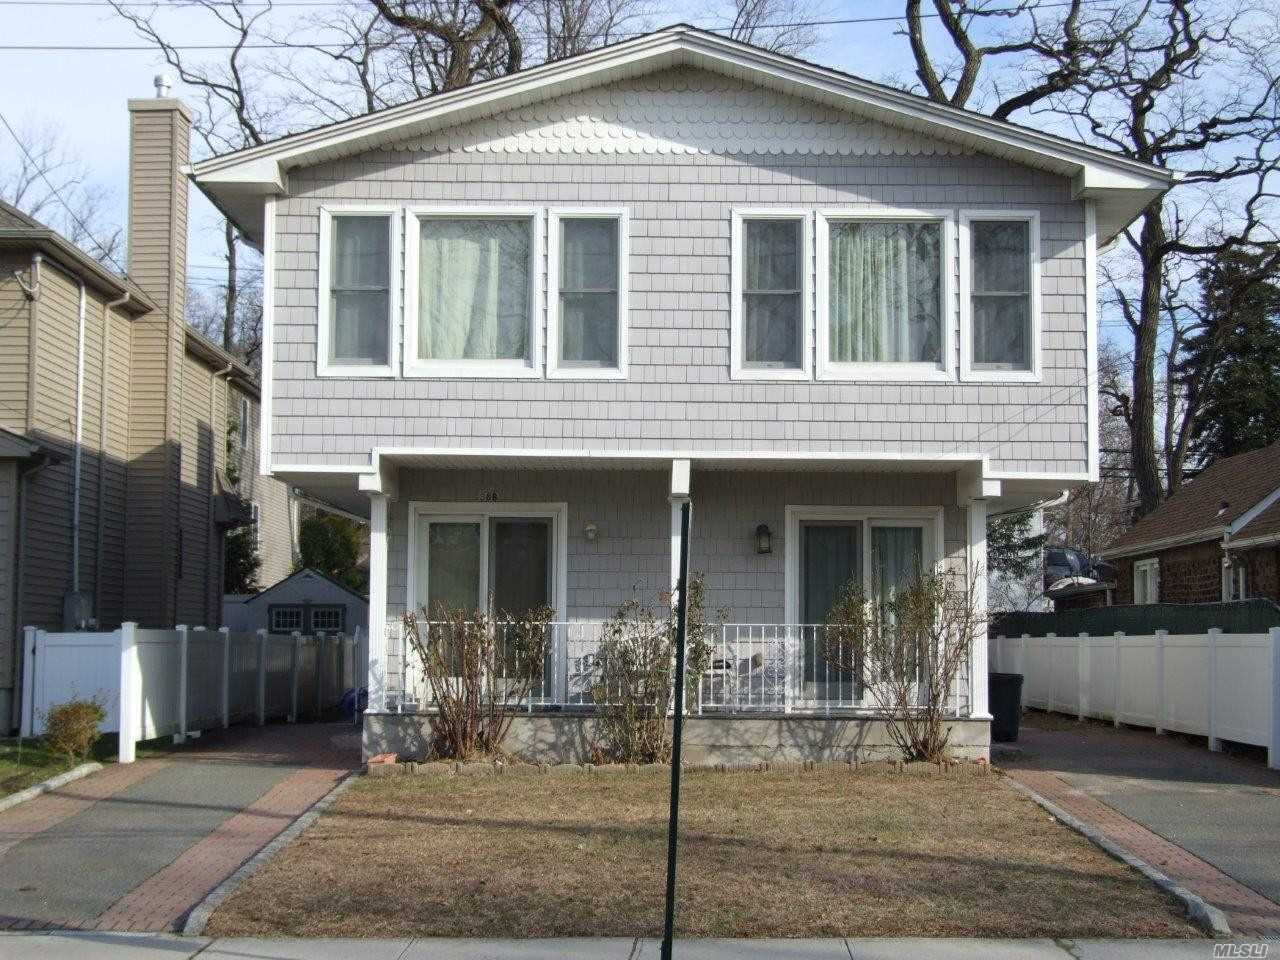 Lovely 2 Family Duplex Each Has 2 Bedrooms 2.5 Baths, Lr/ Dr, Eik, Basement With Laundry Room. Close To Park W/Pool, Tennis & Beach, Shopping & Restaurants. Lirr 35 Mins To Nyc (Penn Station).